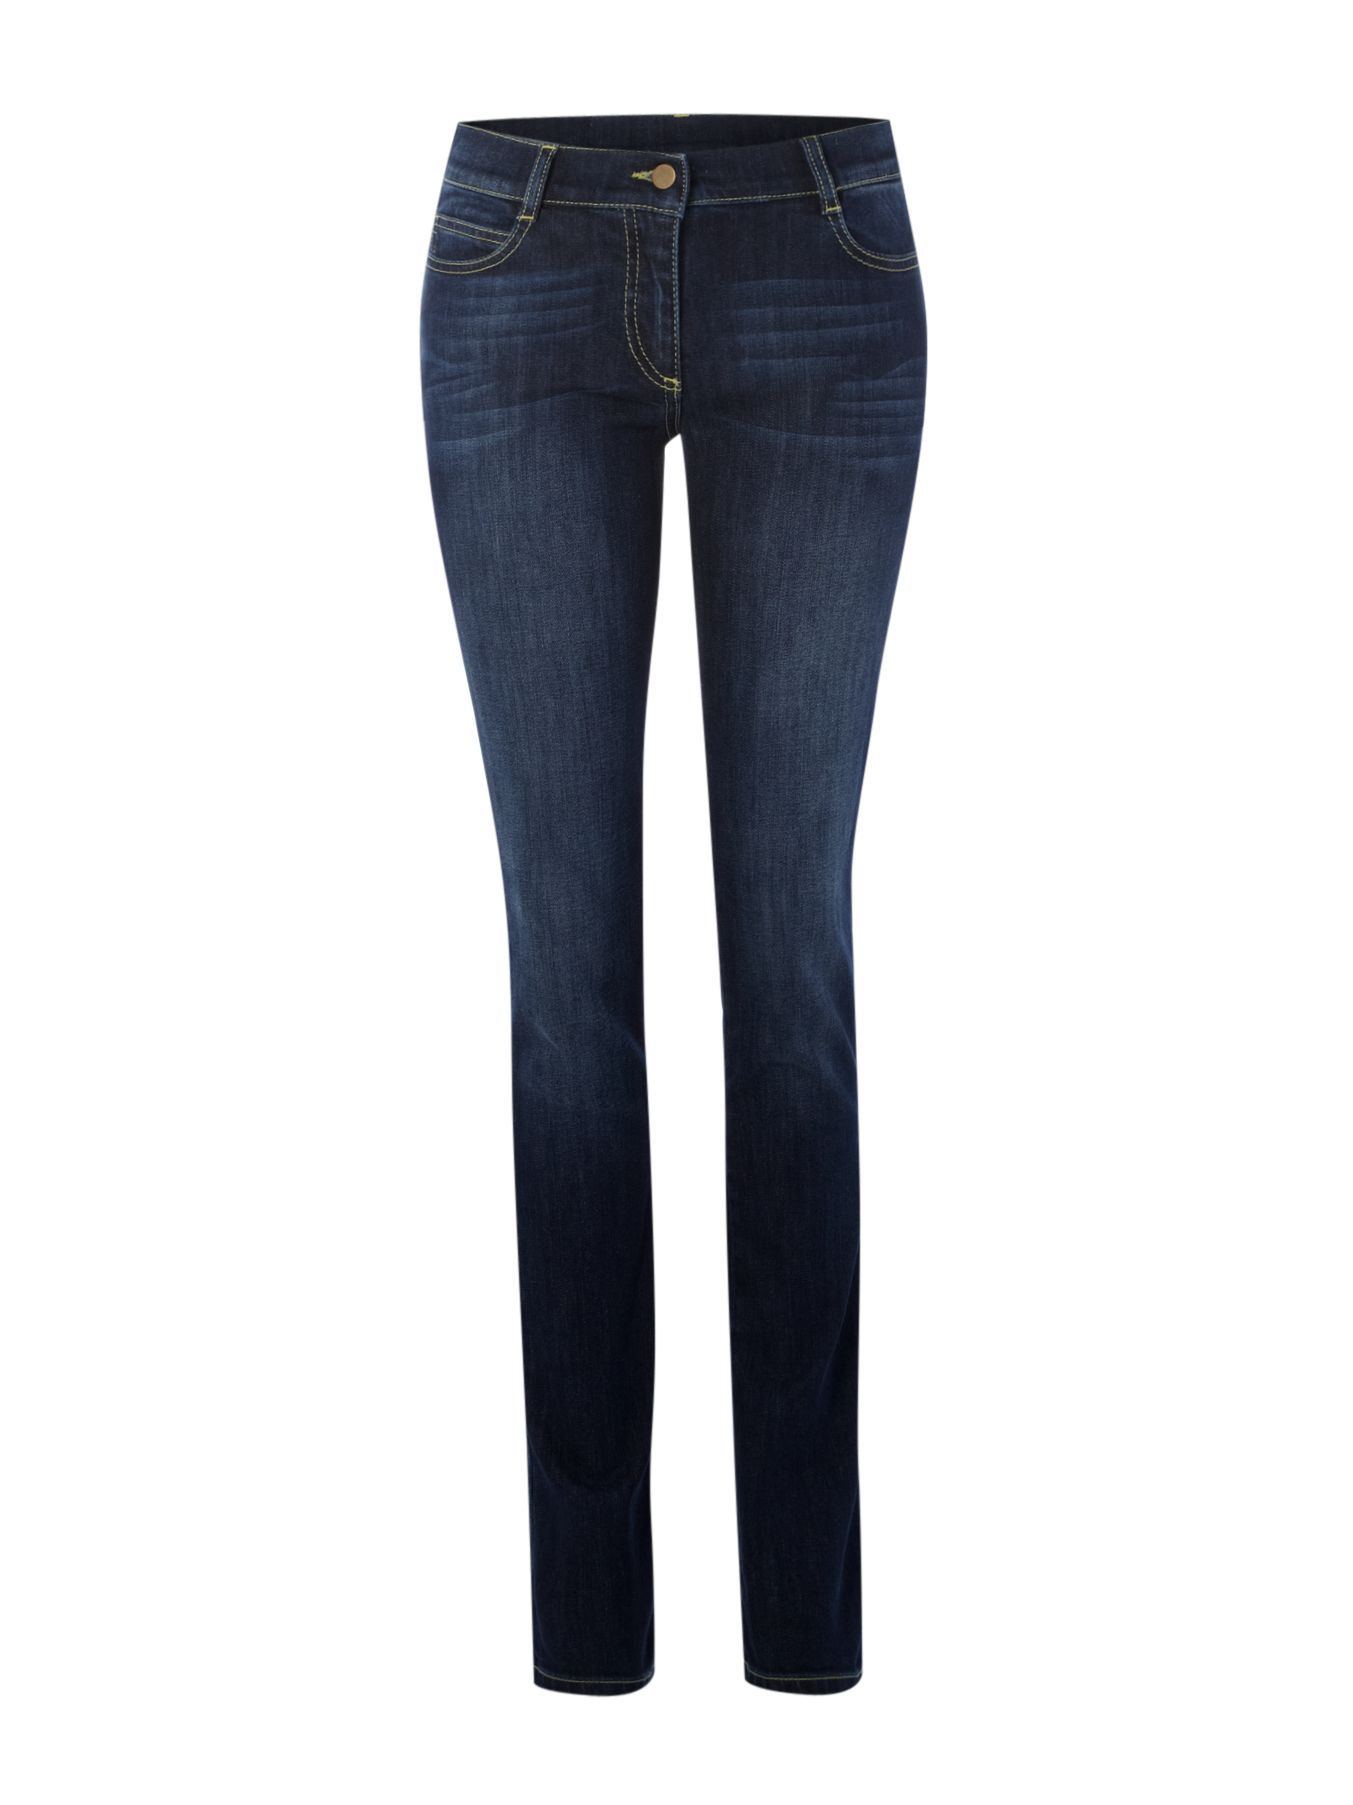 Women's The High Waist Skinny Jean, Denim Indigo - length: standard; pattern: plain; pocket detail: traditional 5 pocket; style: slim leg; waist: mid/regular rise; predominant colour: navy; occasions: casual; fibres: cotton - mix; material texture: denim; jeans detail: whiskering, shading down centre of thigh; texture group: denim; pattern type: fabric; pattern size: standard